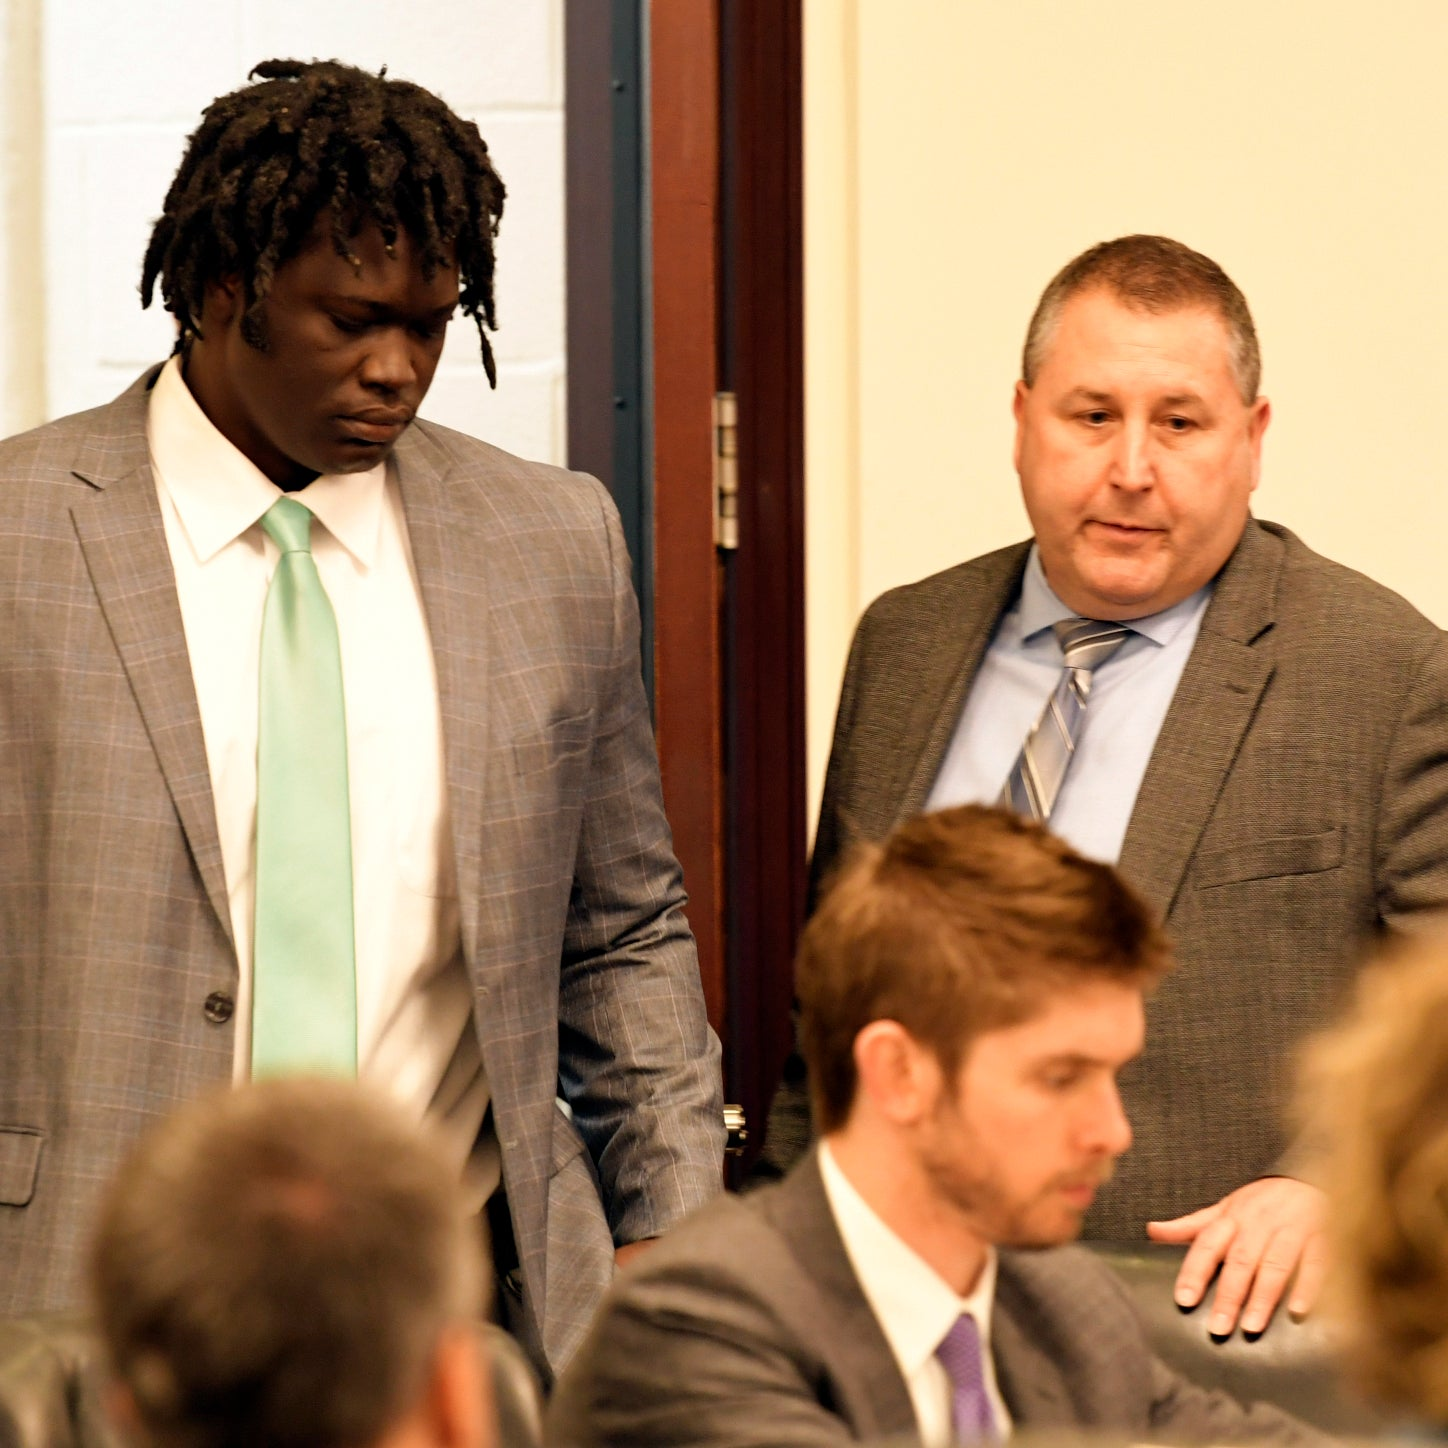 Emanuel Samson enters the courtroom for the jury verdict on Friday, May 24, 2019. Samson was indicted on 43 counts in the case, including first-degree murder in the shooting death of Melanie Crow during the 2017 Antioch church shooting.